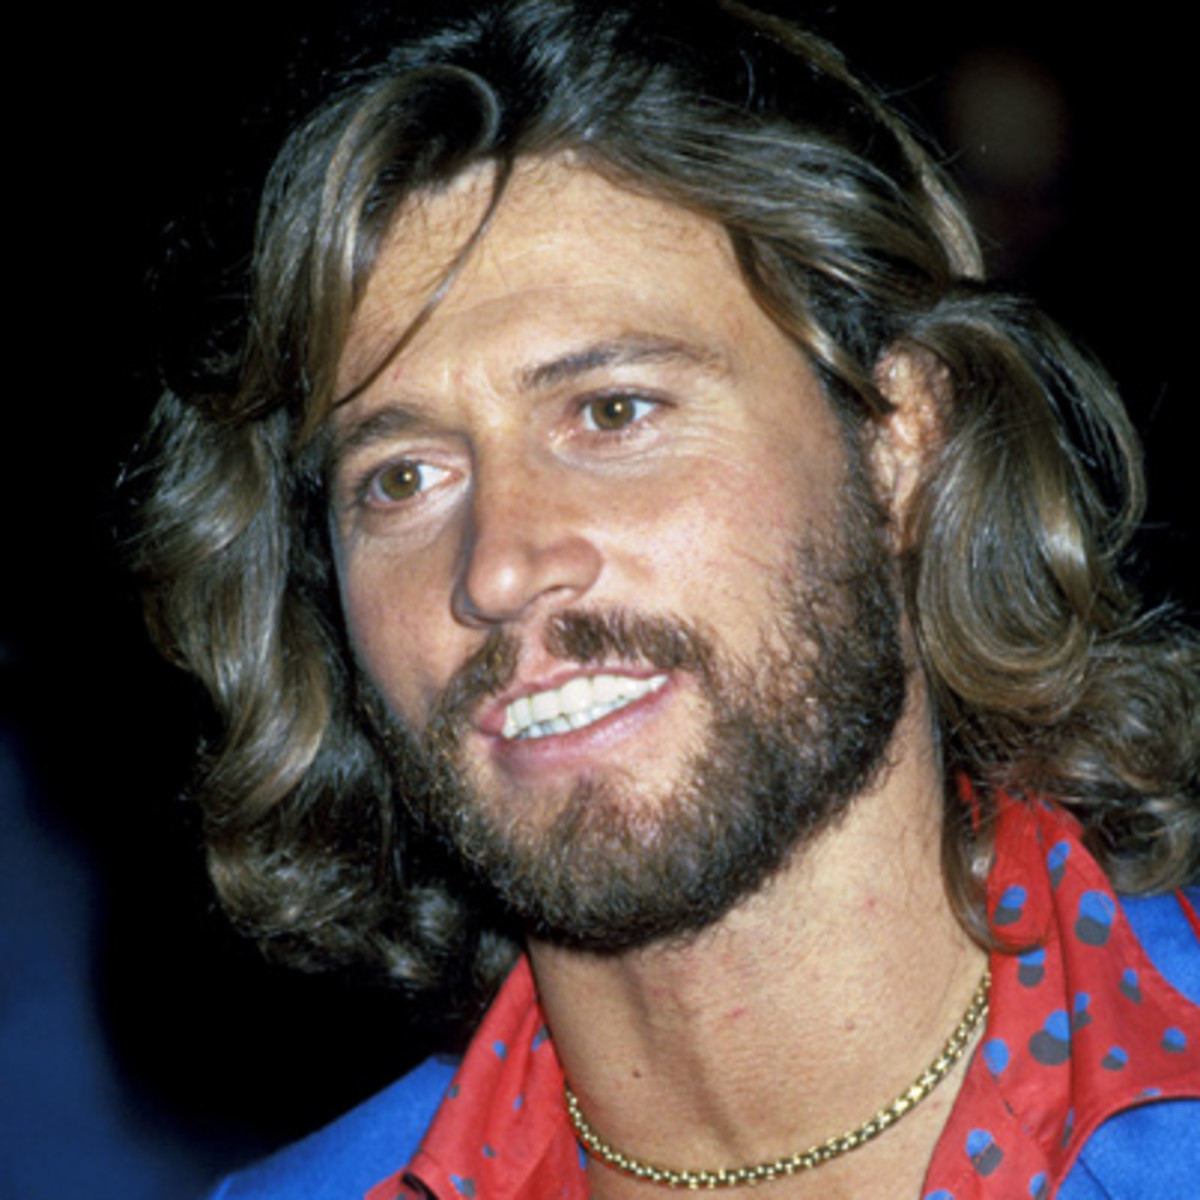 Barry Gibb - Songwriter, Singer - Biography.com